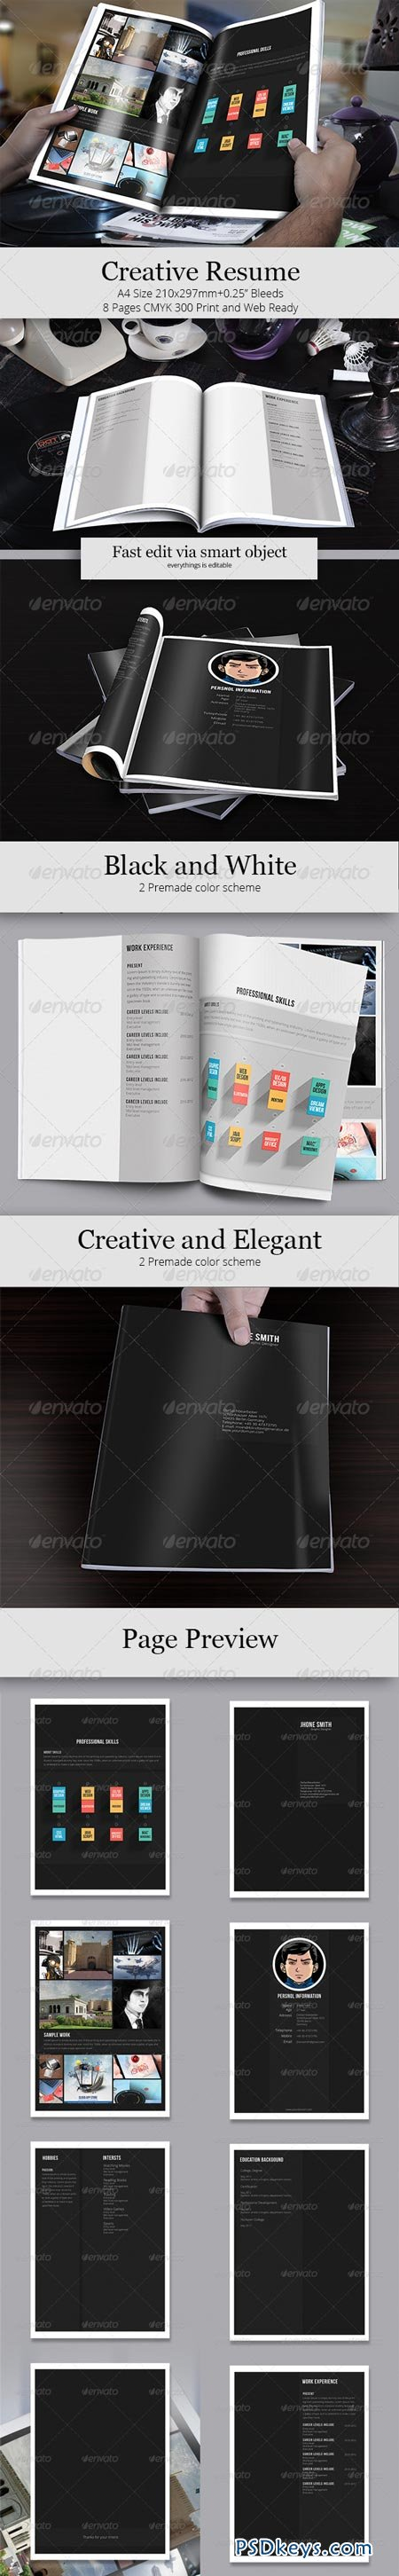 creative resume template 6430195  u00bb free download photoshop vector stock image via torrent